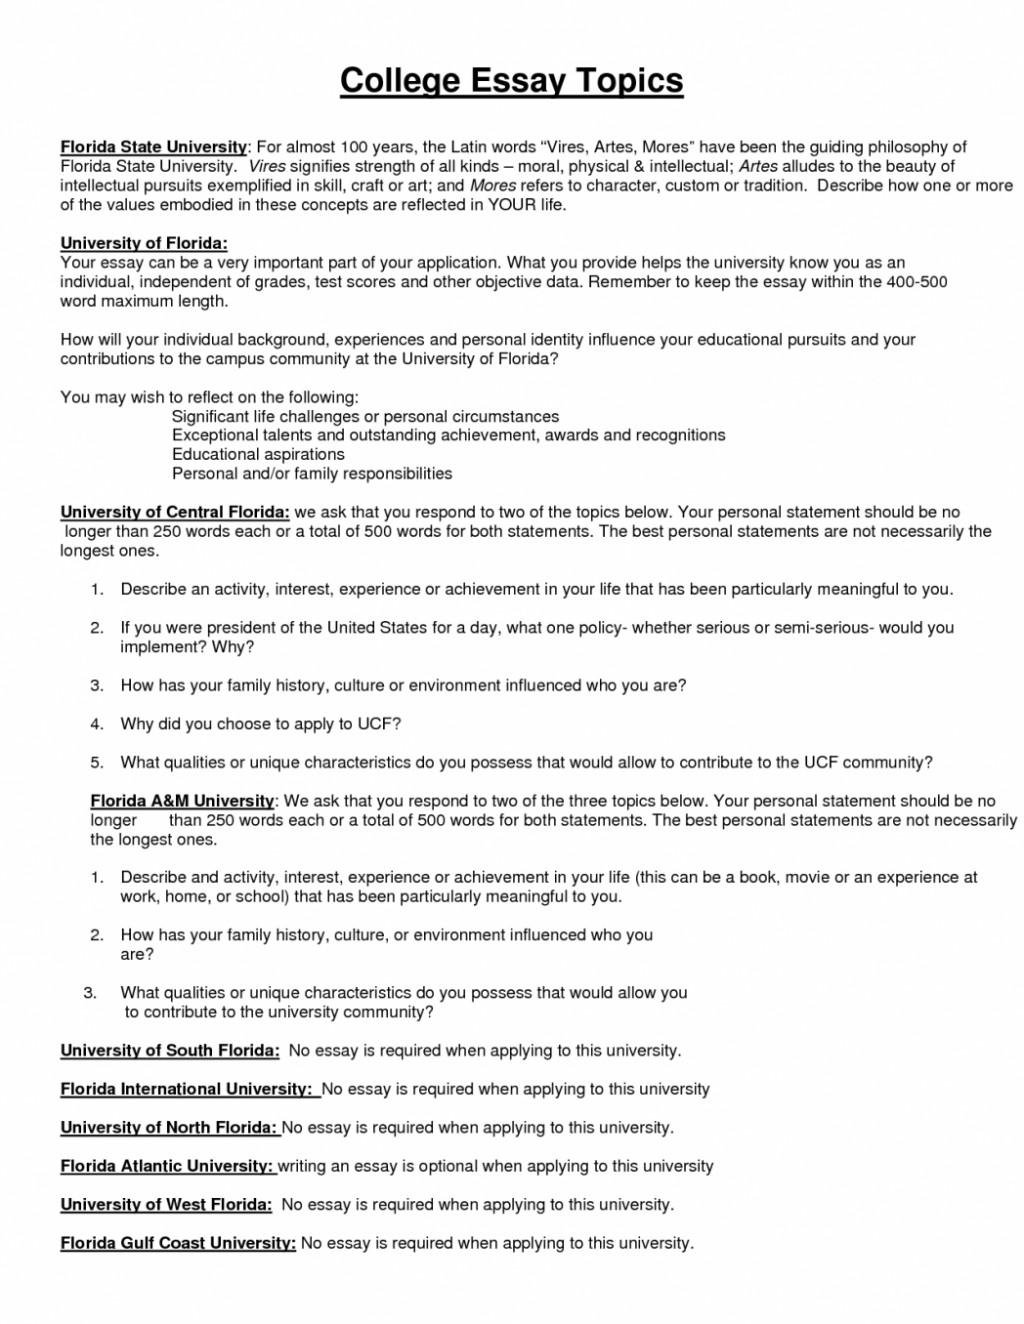 002 The Best College Essay Questions Fun Weird Typical For Towson Supplement Applications Answers Examples 1048x1356 Example Magnificent Quirk Large